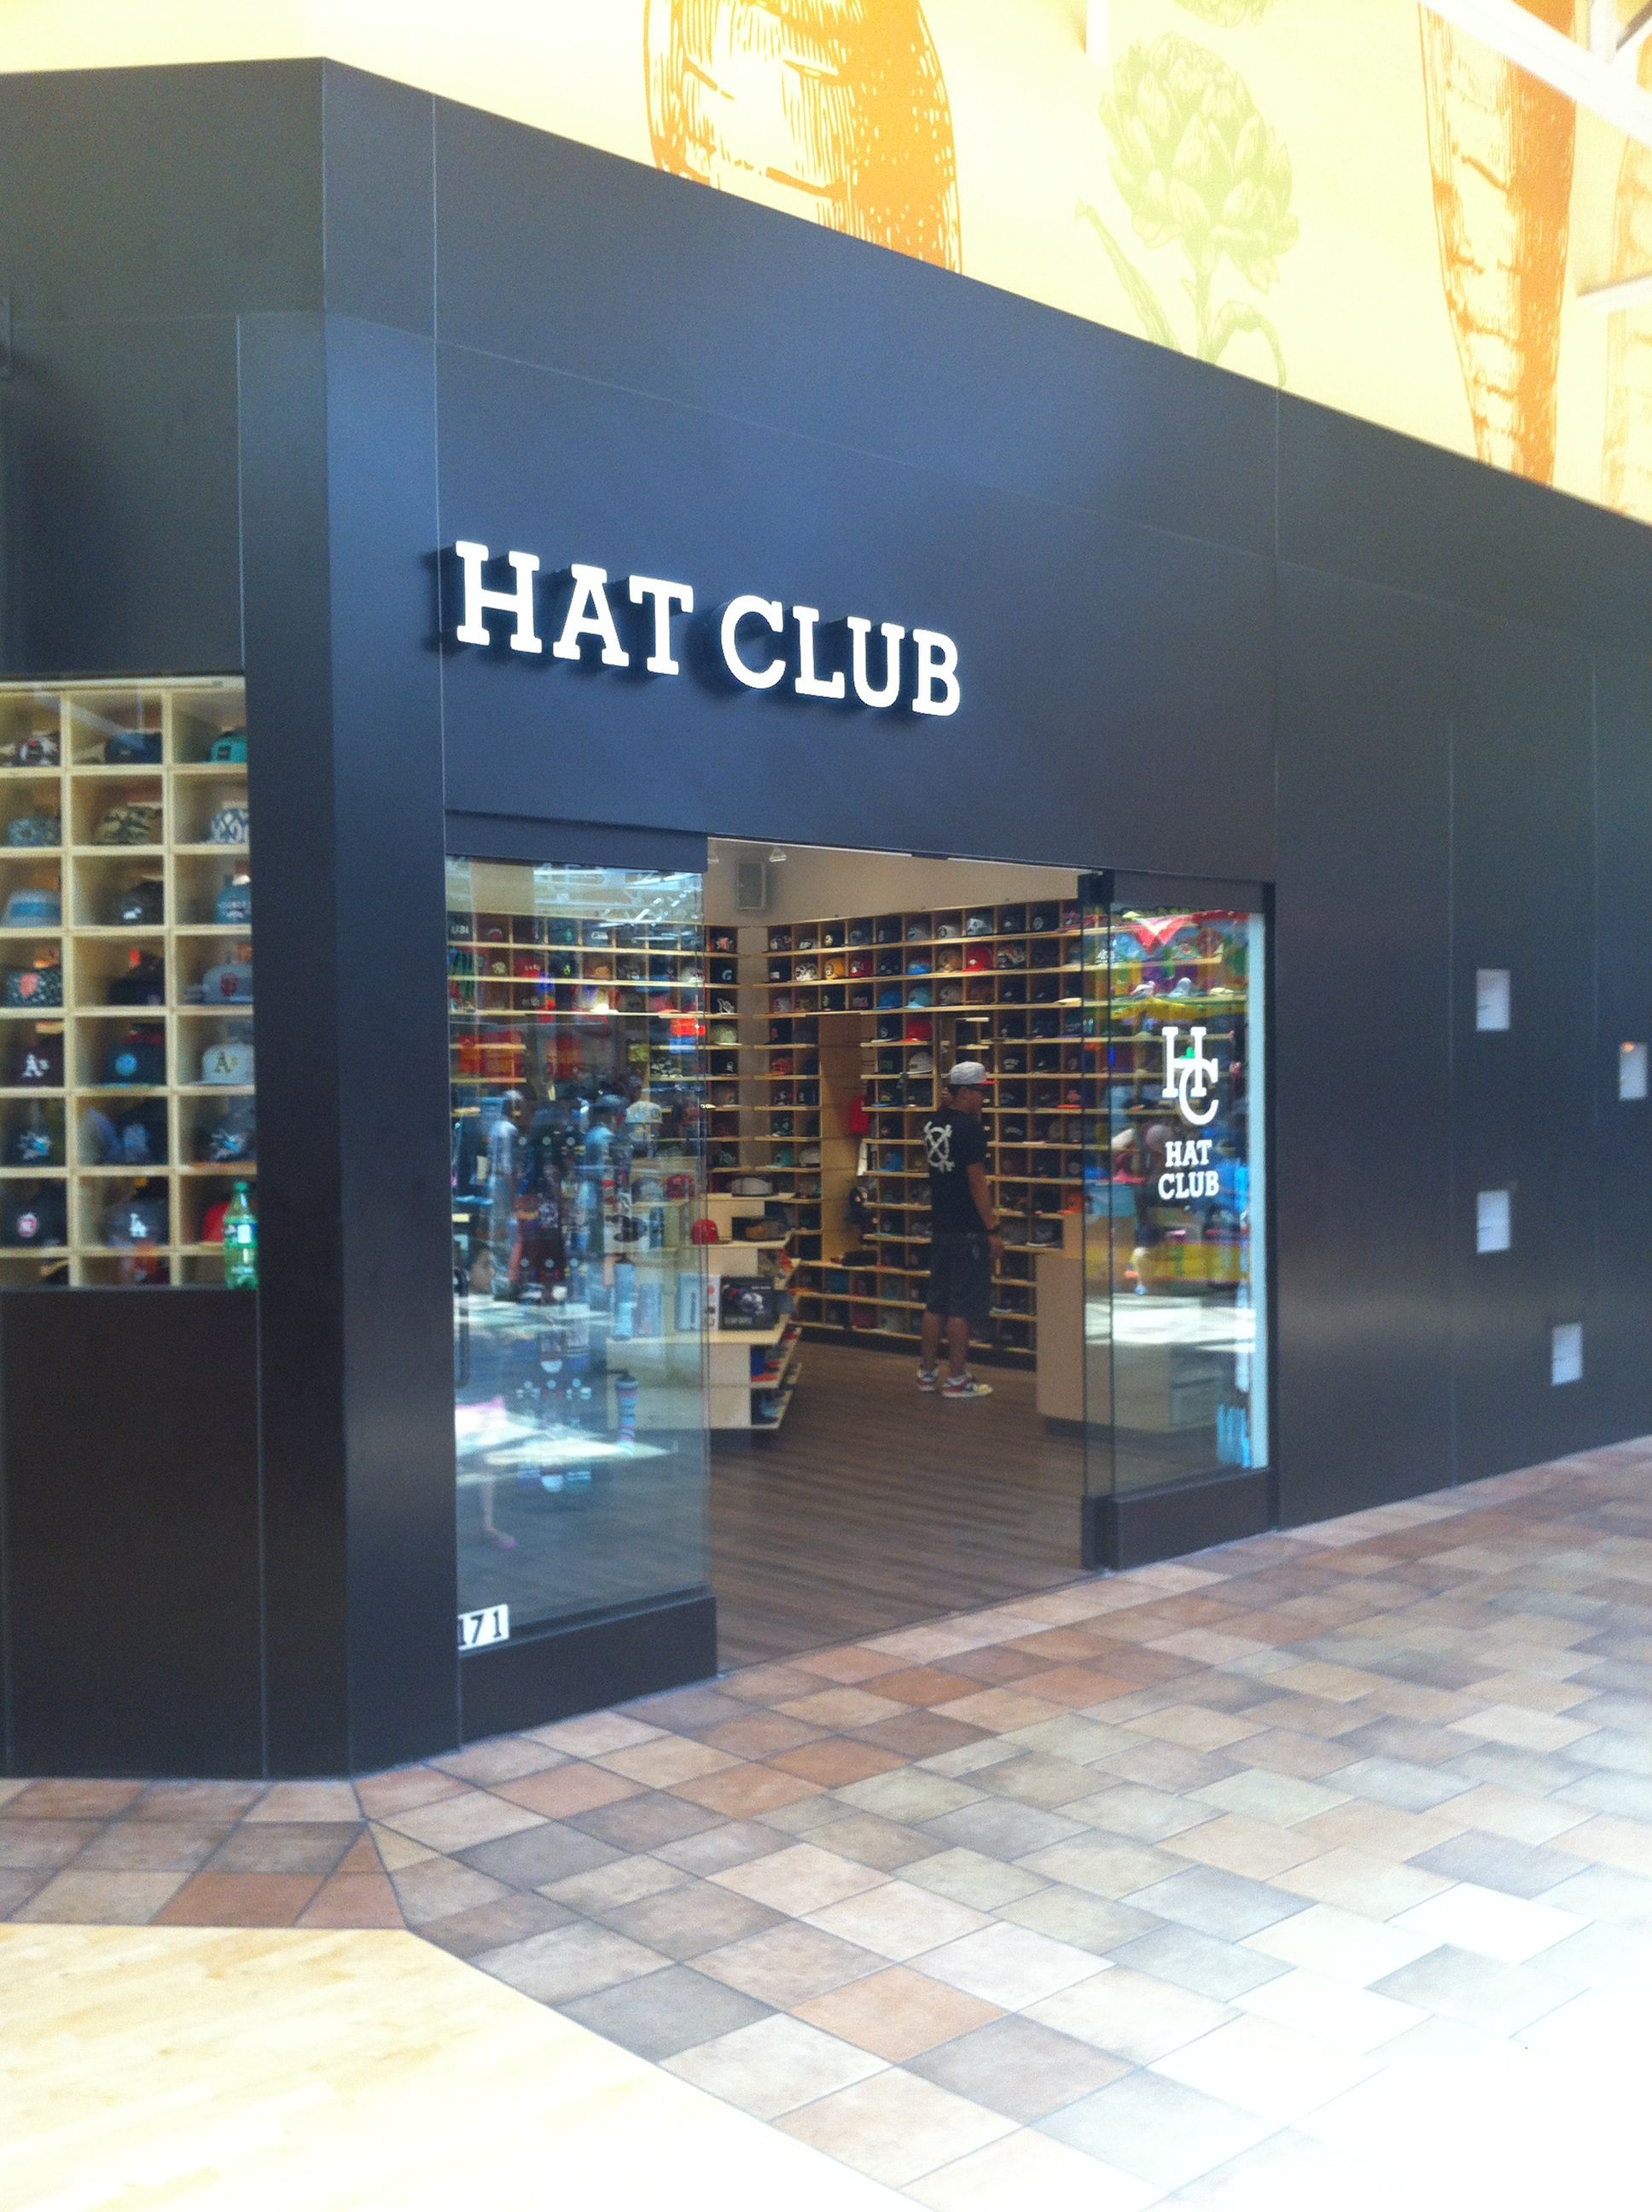 Hat Club Great Mall Milpitas Ca Retail Concepts Decor Home Decor